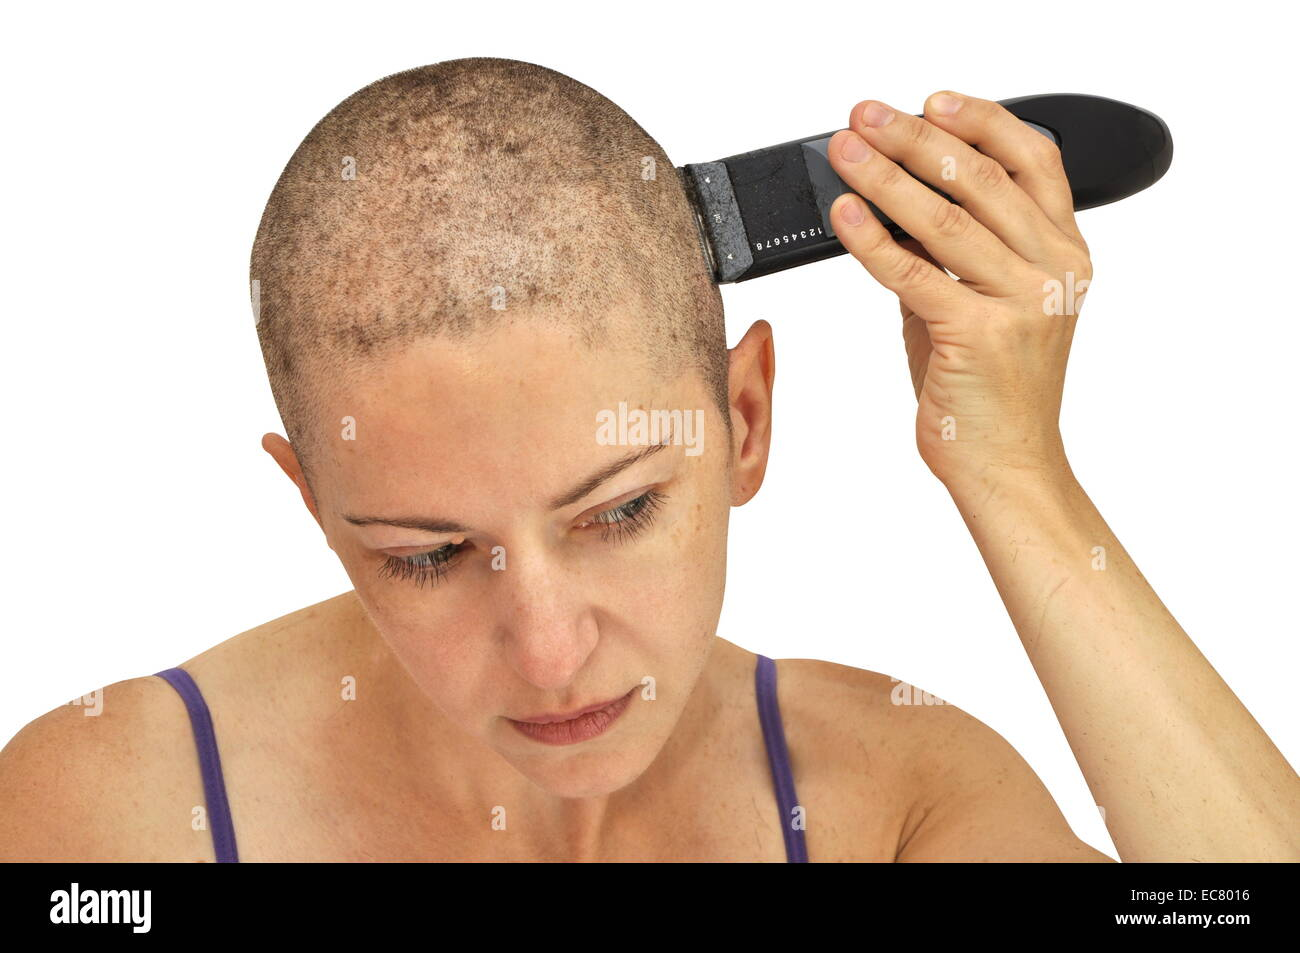 Woman shaving herself bald using left hand, closeup, isolated on white. - Stock Image